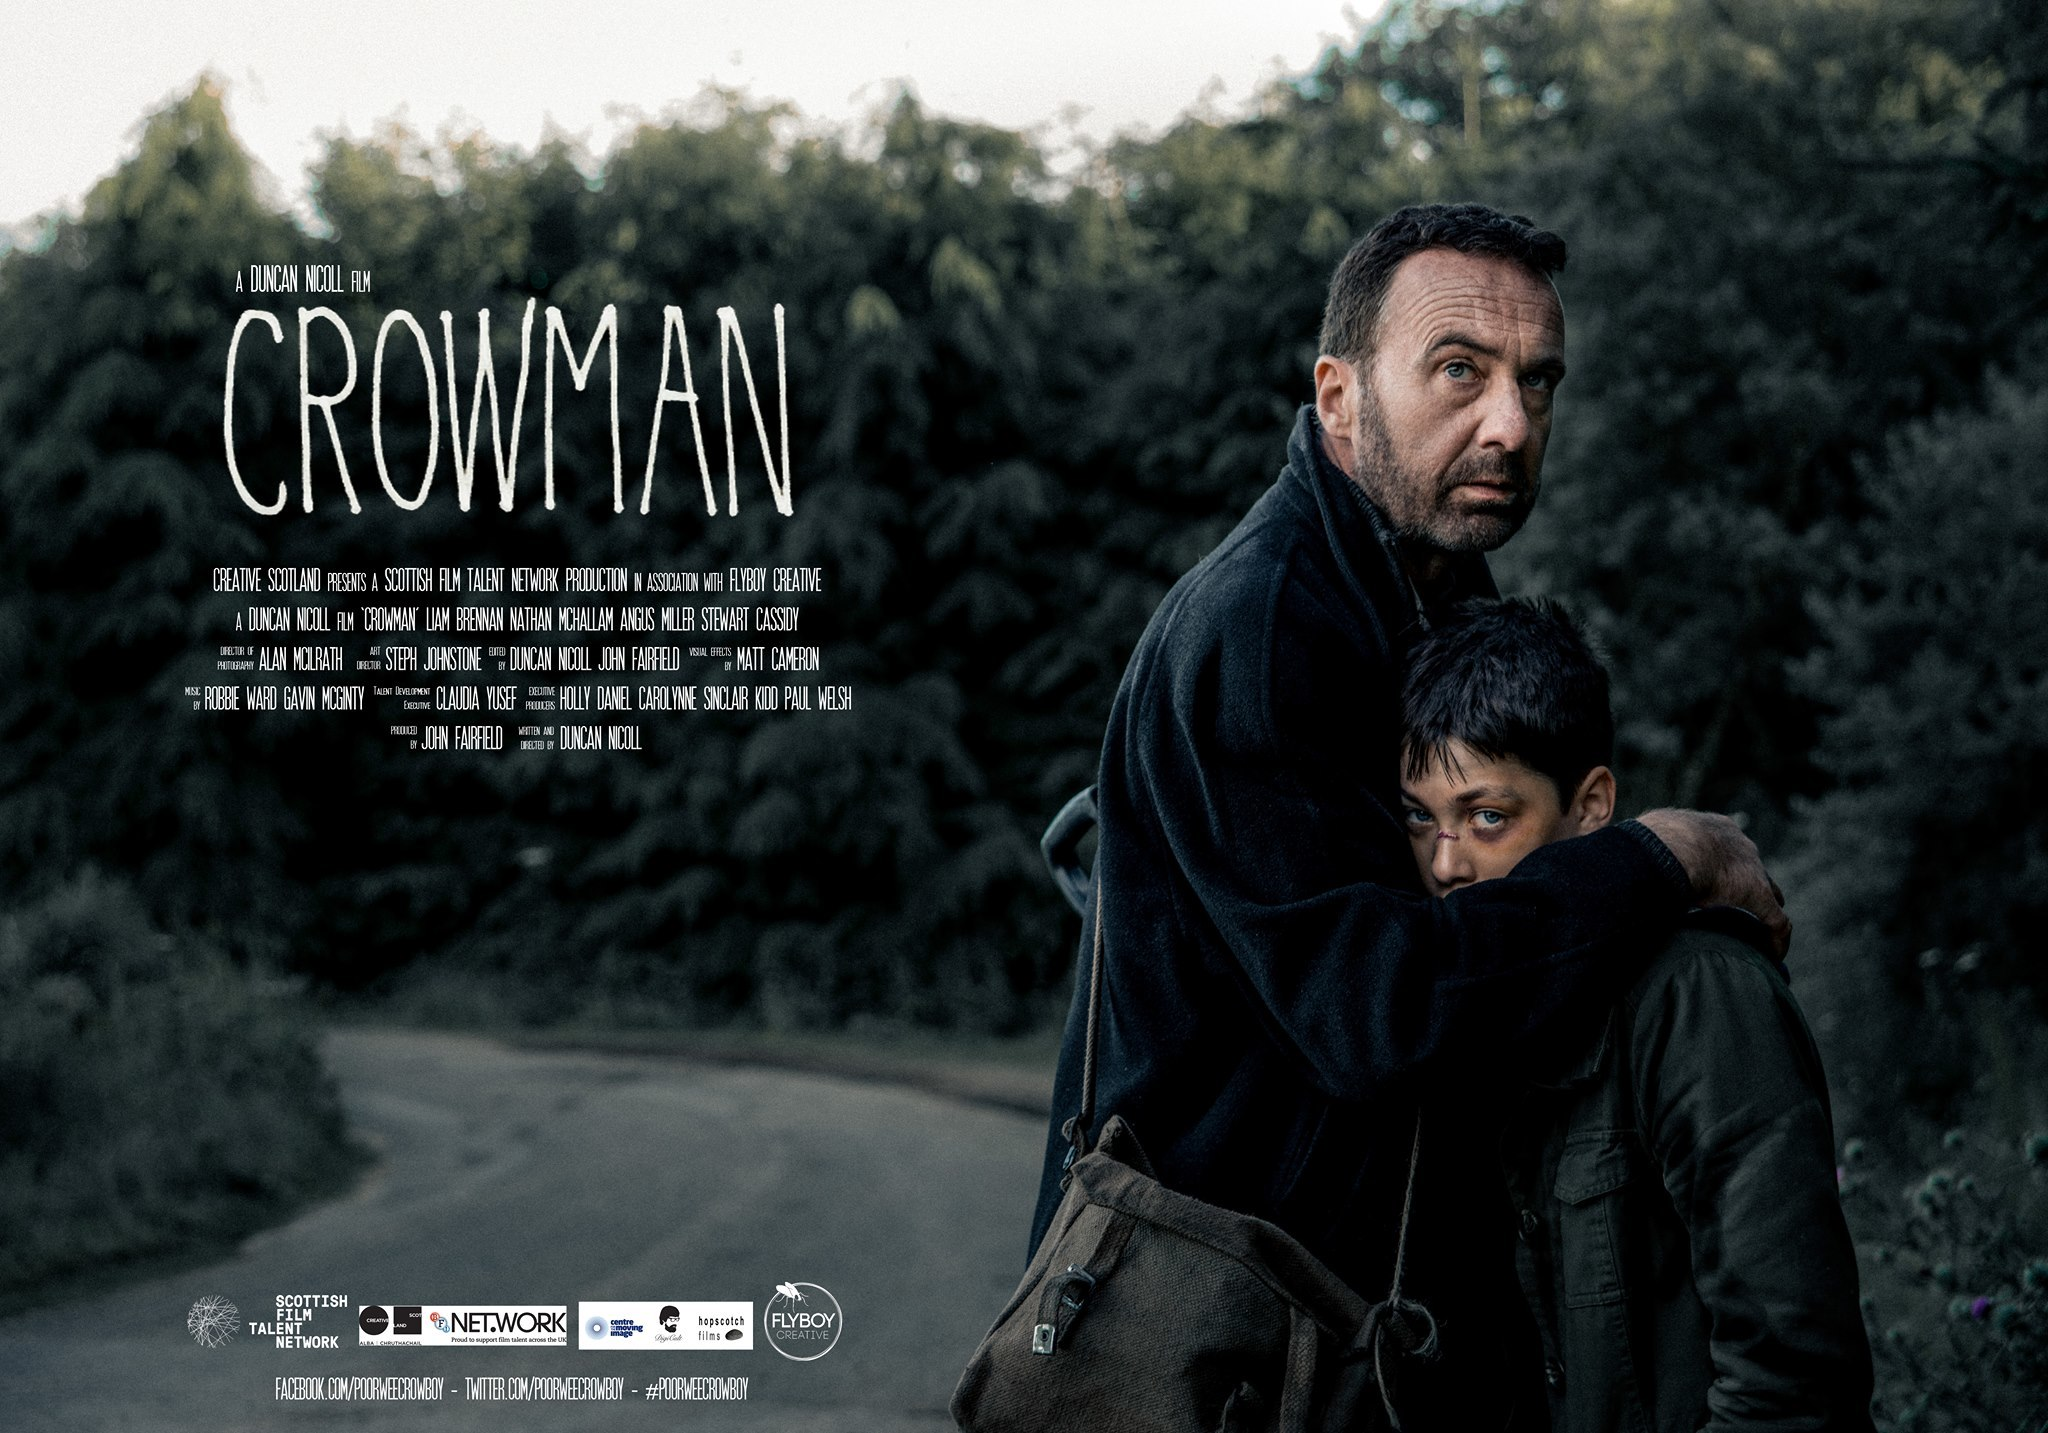 Crowman will have its world premiere at the Edinburgh International Film Festival next month before a second screening in Hollywood. The striking film poster image was taken by Steve Galloway.